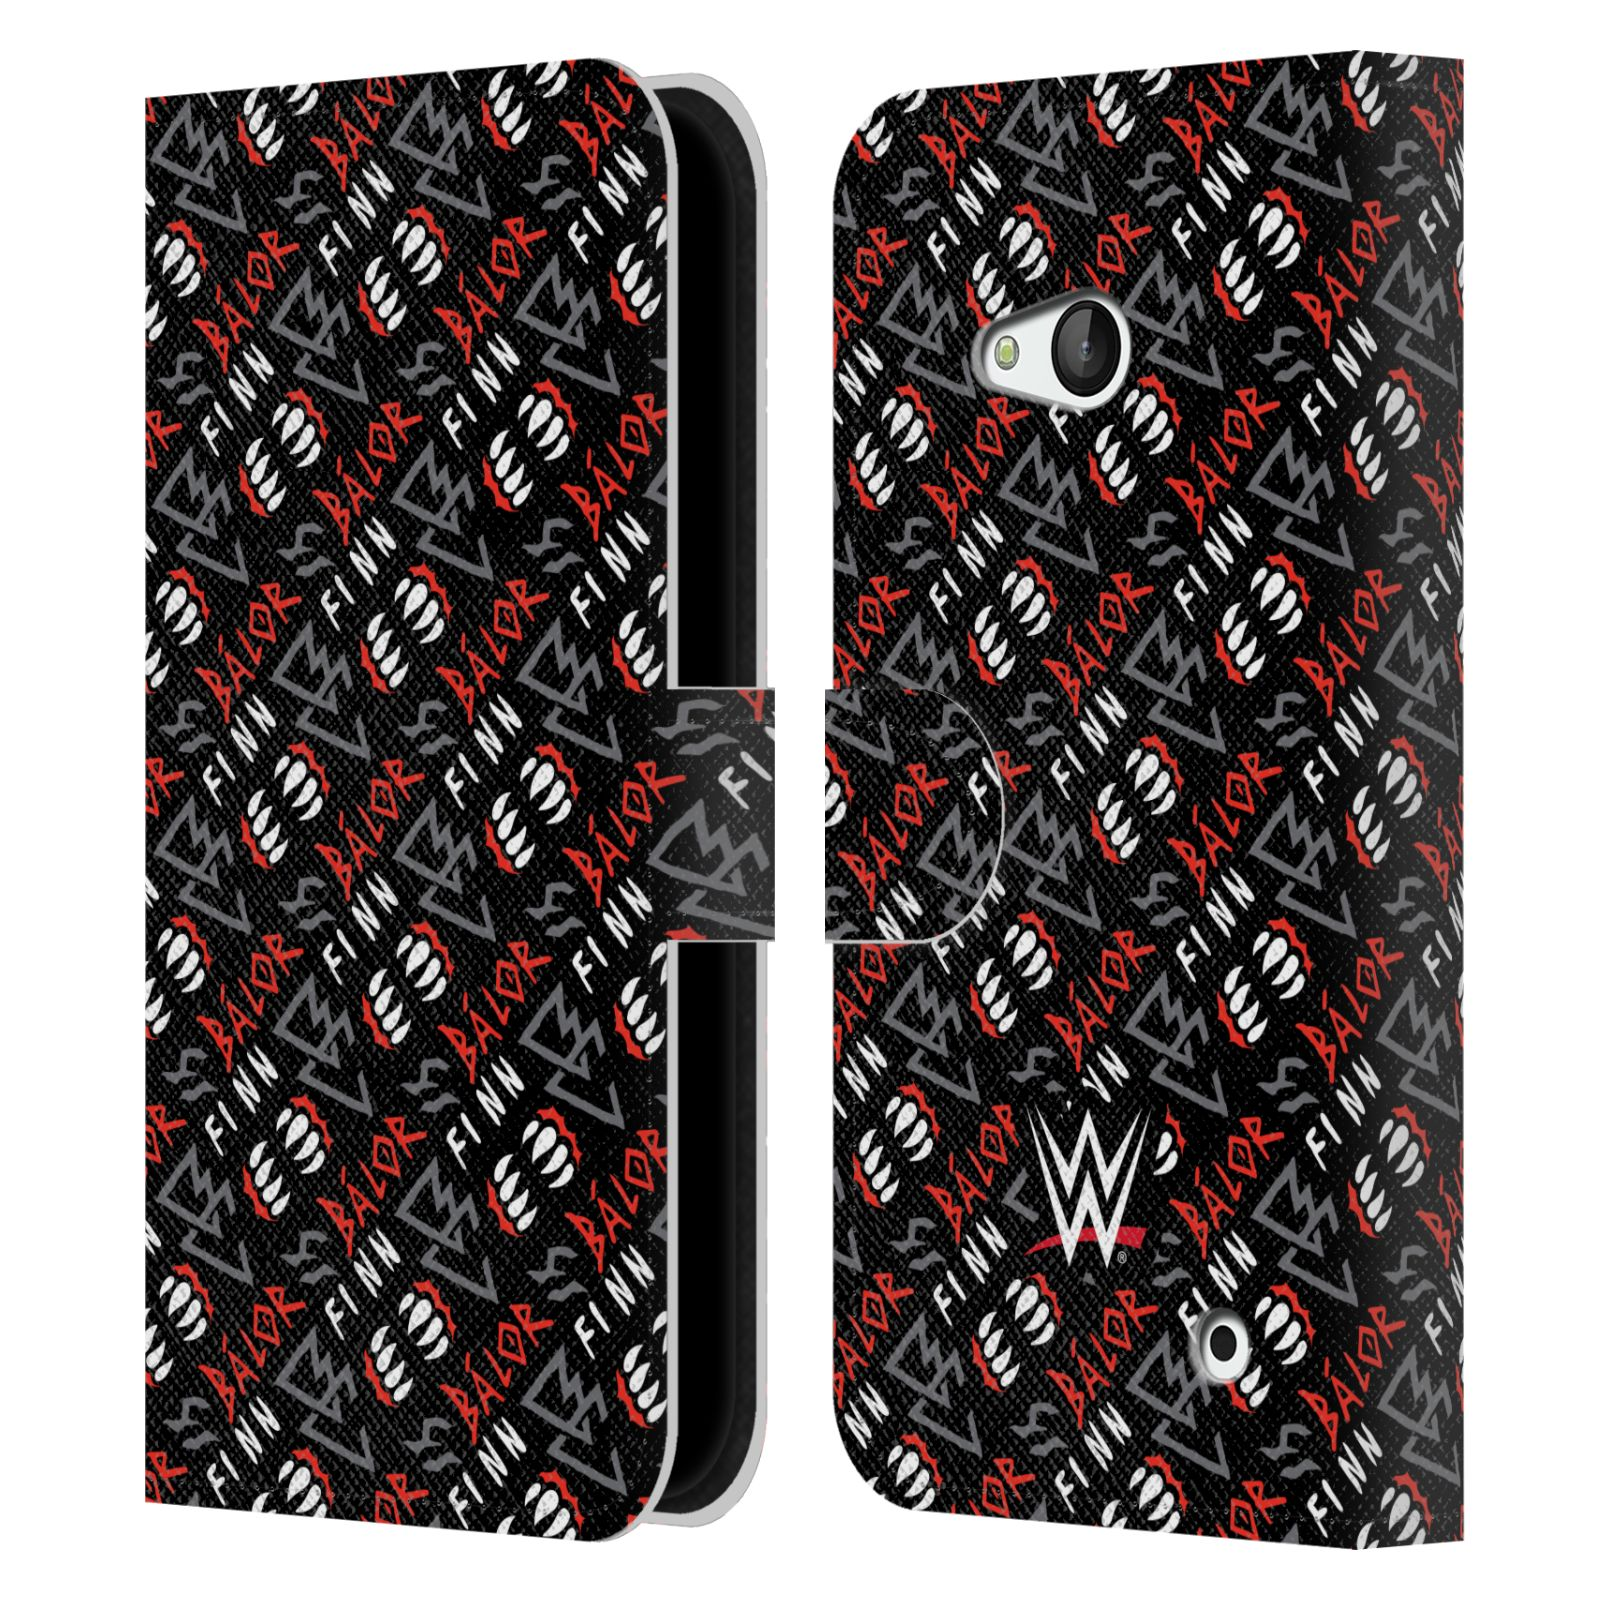 OFFICIAL-WWE-2017-FINN-BALOR-LEATHER-BOOK-WALLET-CASE-FOR-MICROSOFT-NOKIA-PHONES